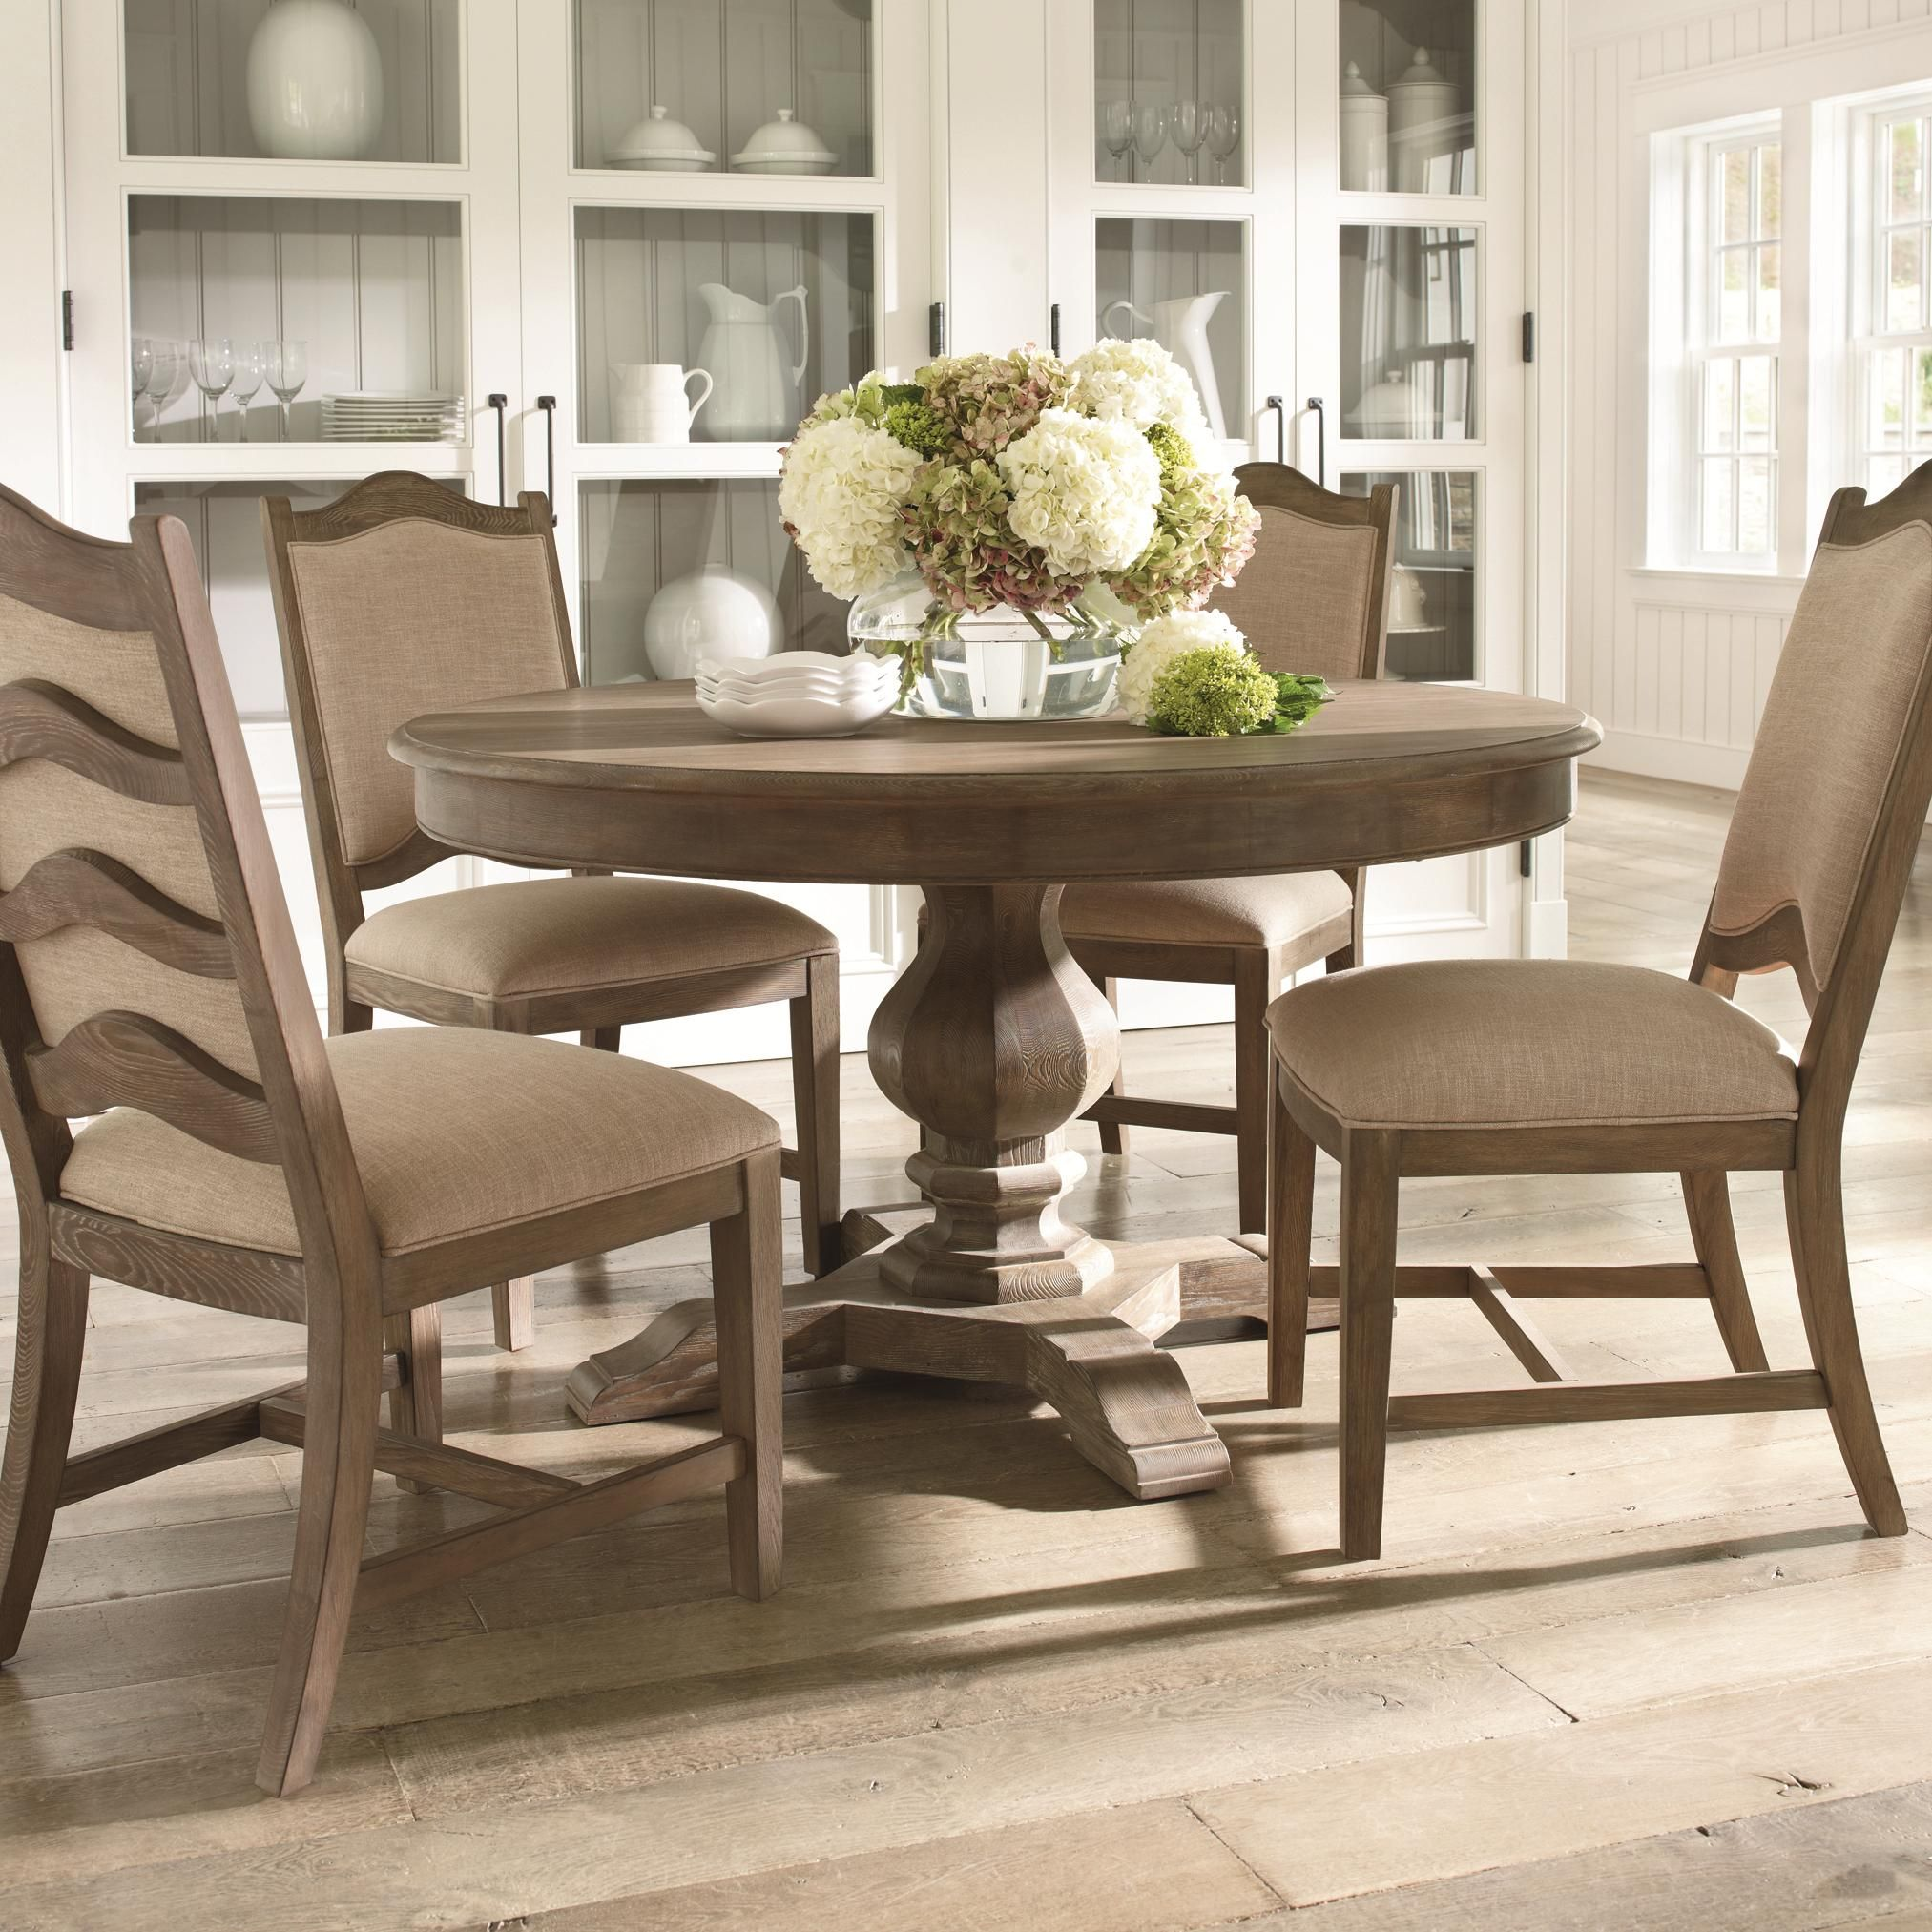 Cobblestone Dining Cobblestone 5 Piece Pedestal Base Table And Ladder Back Chair Set By Schnadig